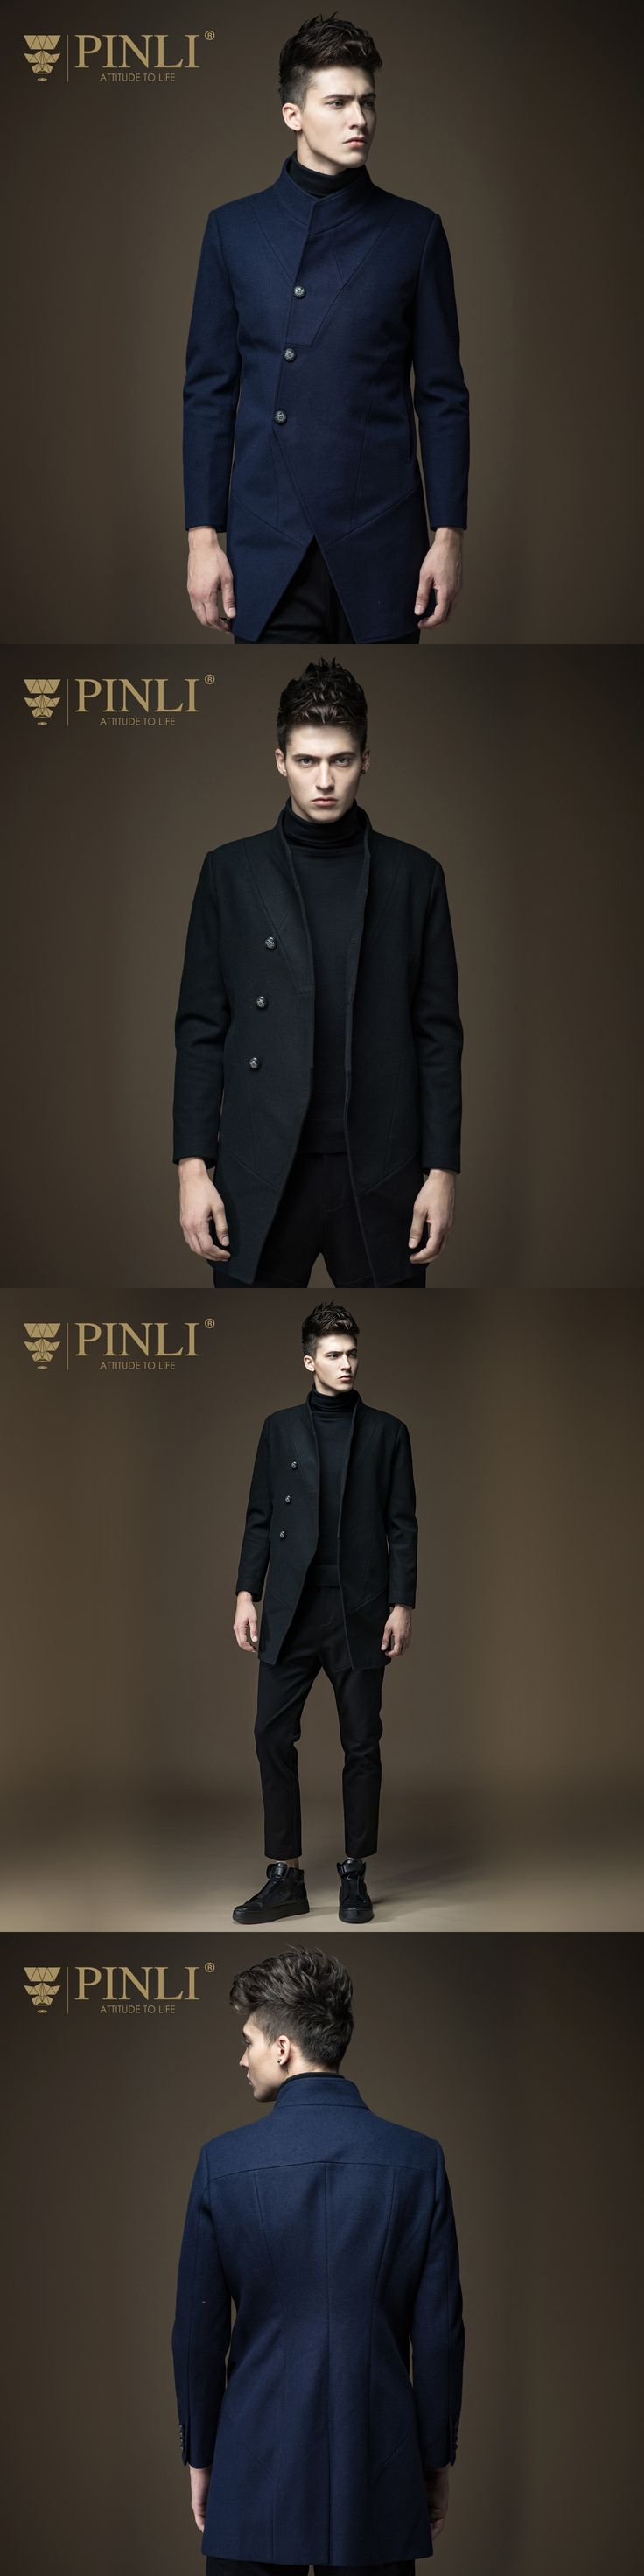 Peacoat Time-limited Half Turn-down Collar Solid No Feathers Pinli 2016 New Winter Men's Slim In The Long Wool Coat B164102001